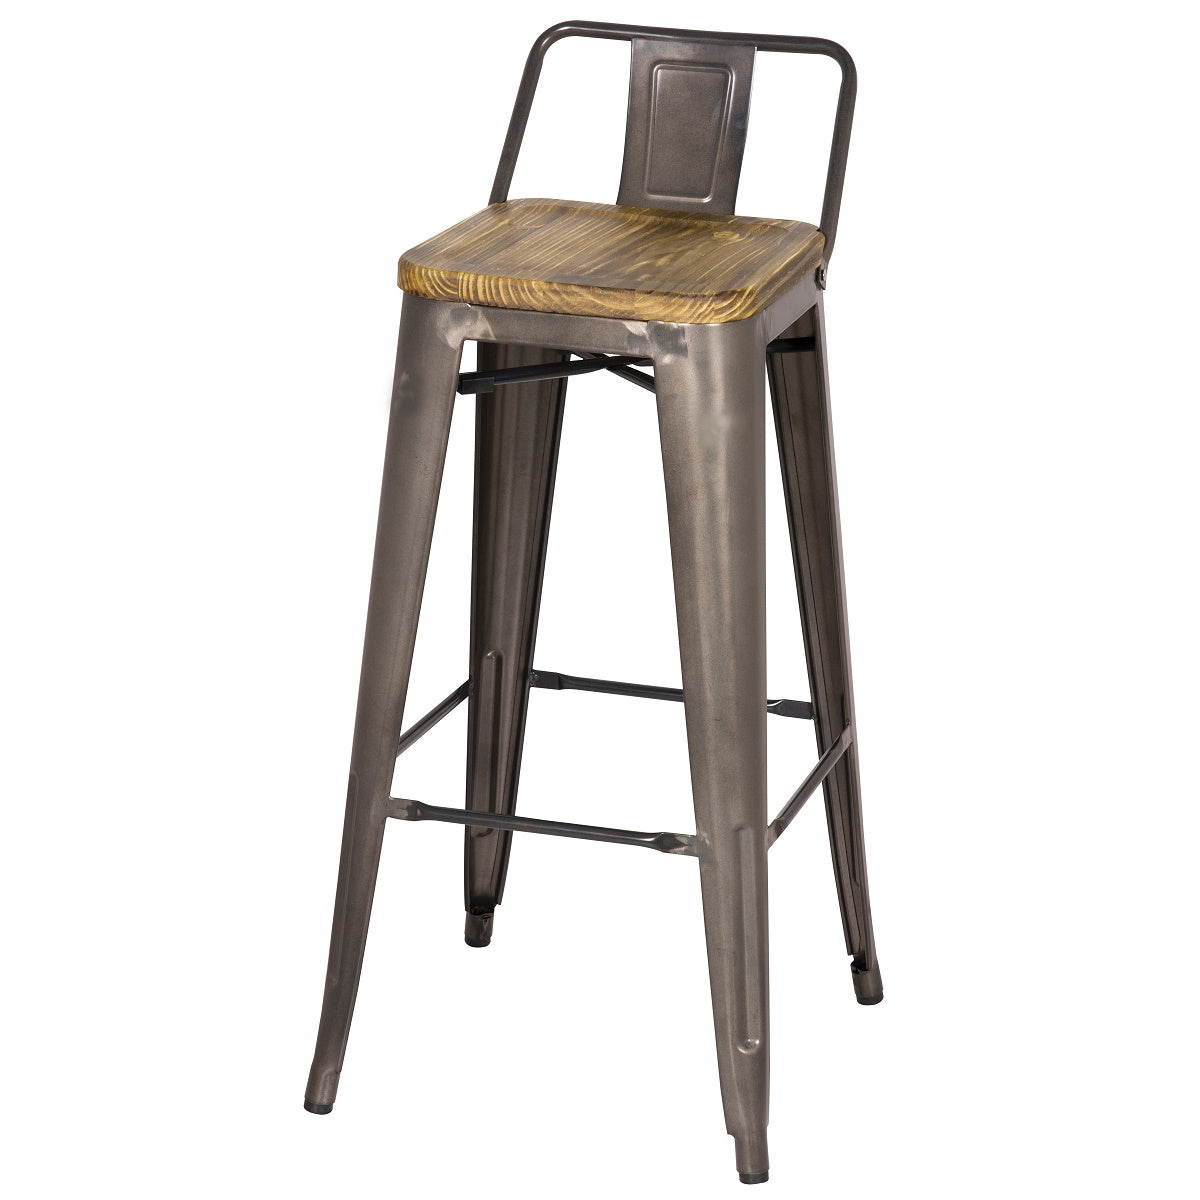 Industrial Metal Counter Stool 26 Seat Height San Diego